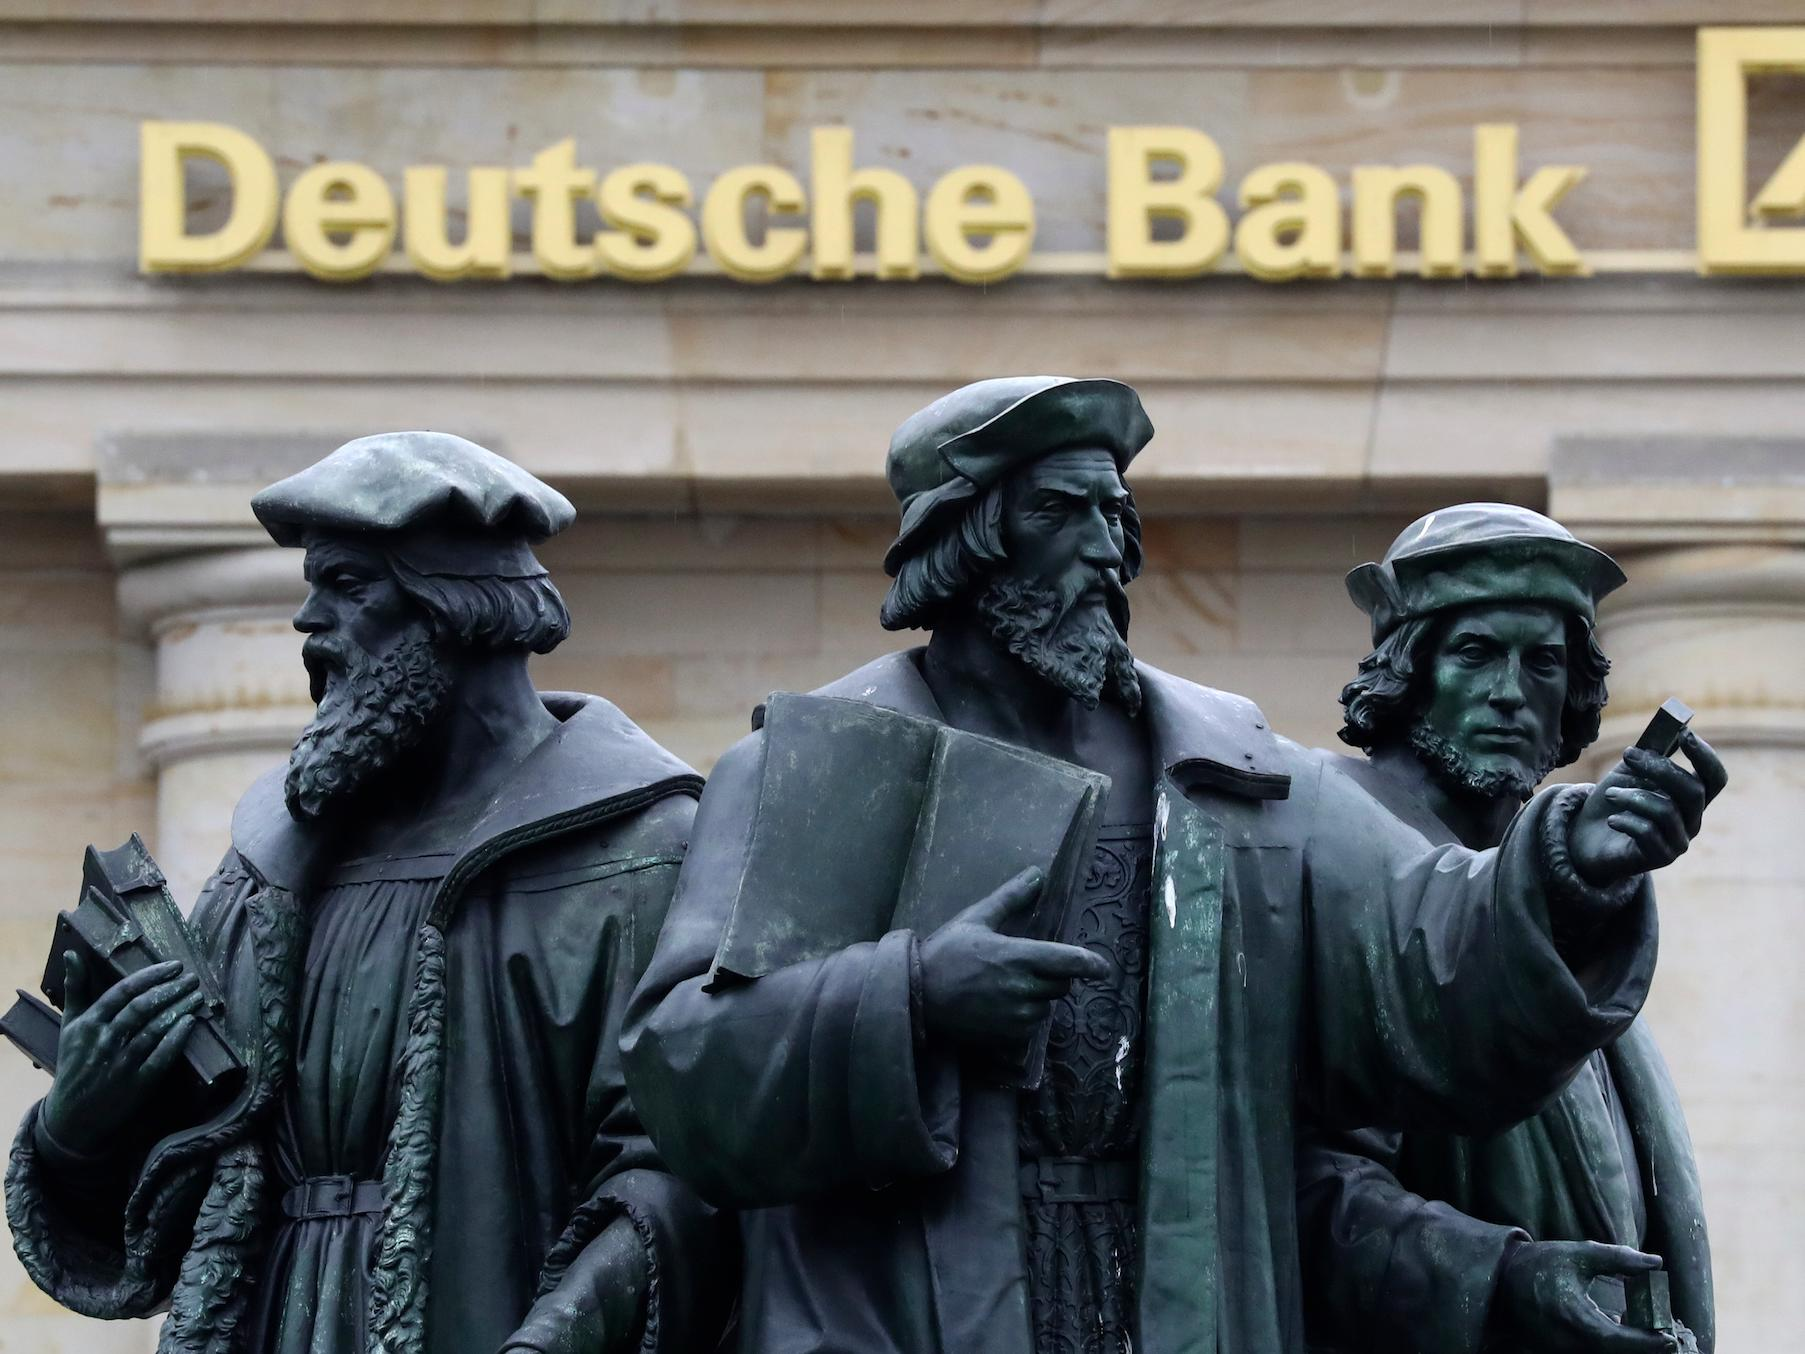 Deutsche Bank will settle with US regulators over mortgage-backed securities for $7.2 billion